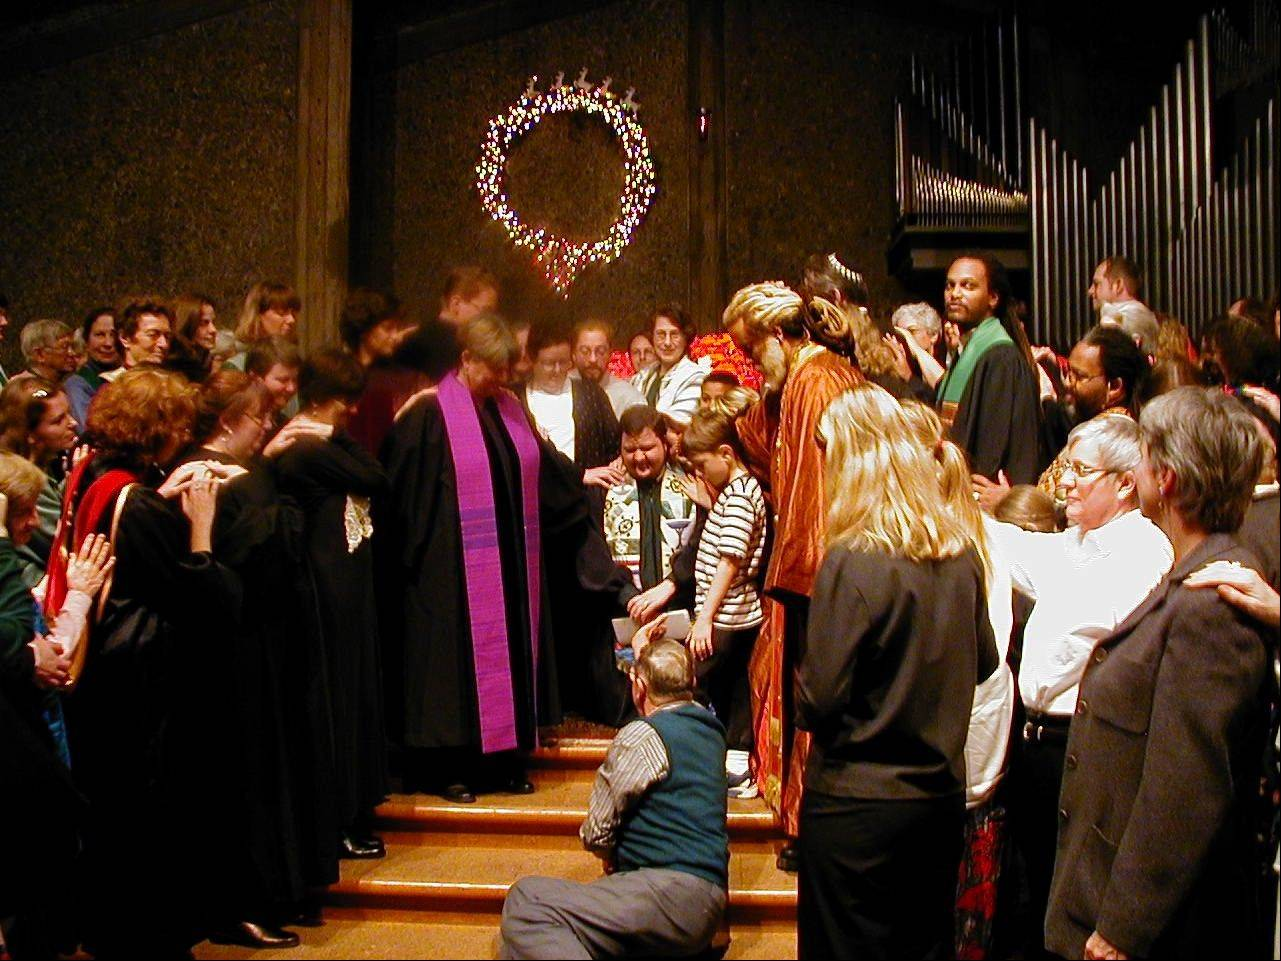 One of the monumental events in the life of Rev. Sean Parker Dennison took place 12 years ago, when he was ordained as a Unitarian Universalist minister.